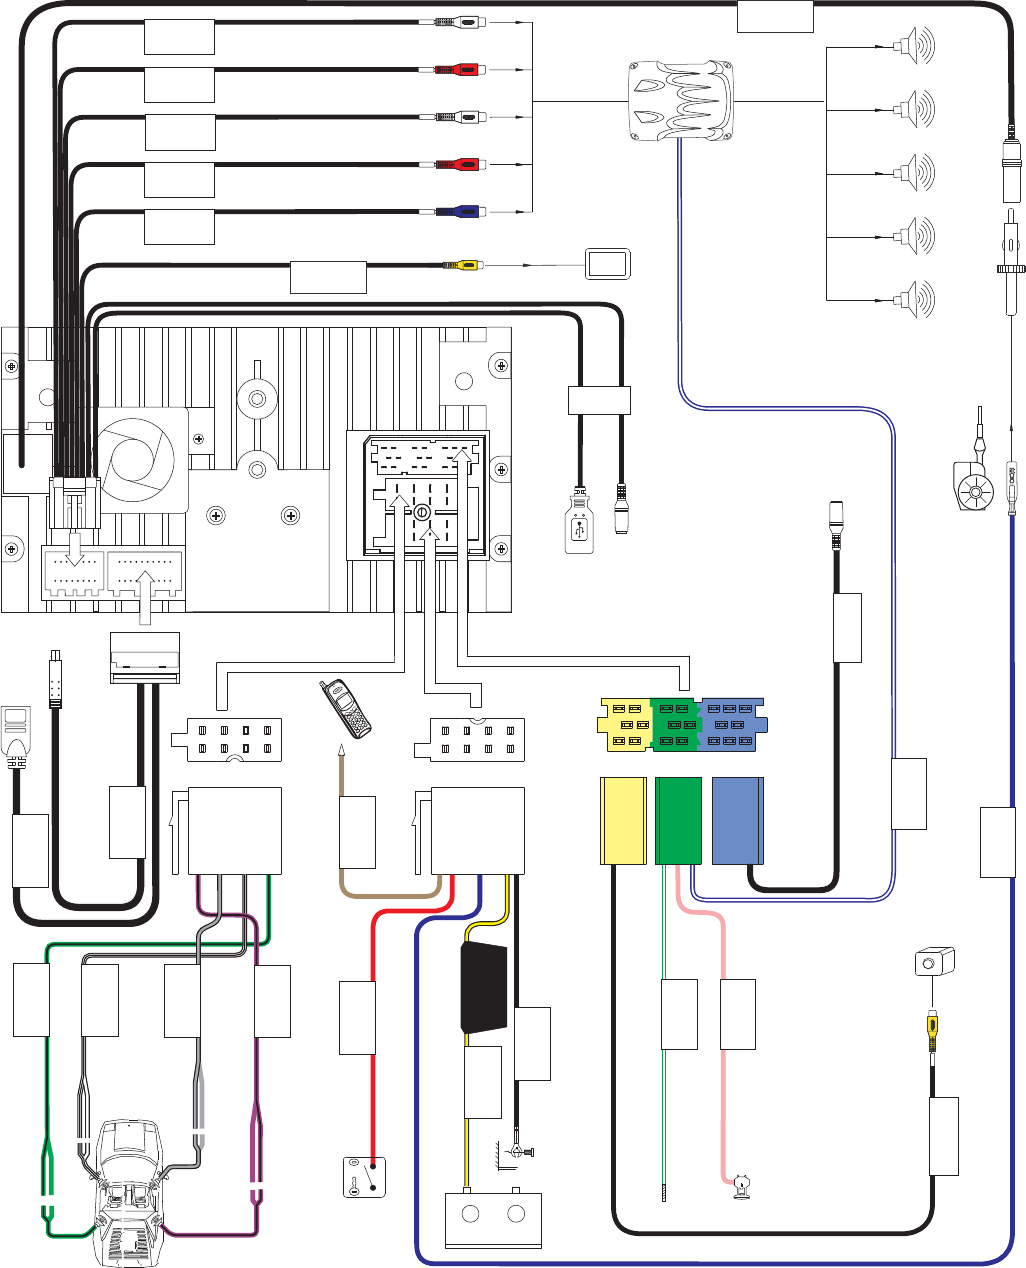 34fbcac4 7bef 4eb8 b34c 690a937048d0 bg4 jensen wiring diagram jensen vm9215bt update \u2022 wiring diagrams j sony ecm77b wiring diagram at bakdesigns.co